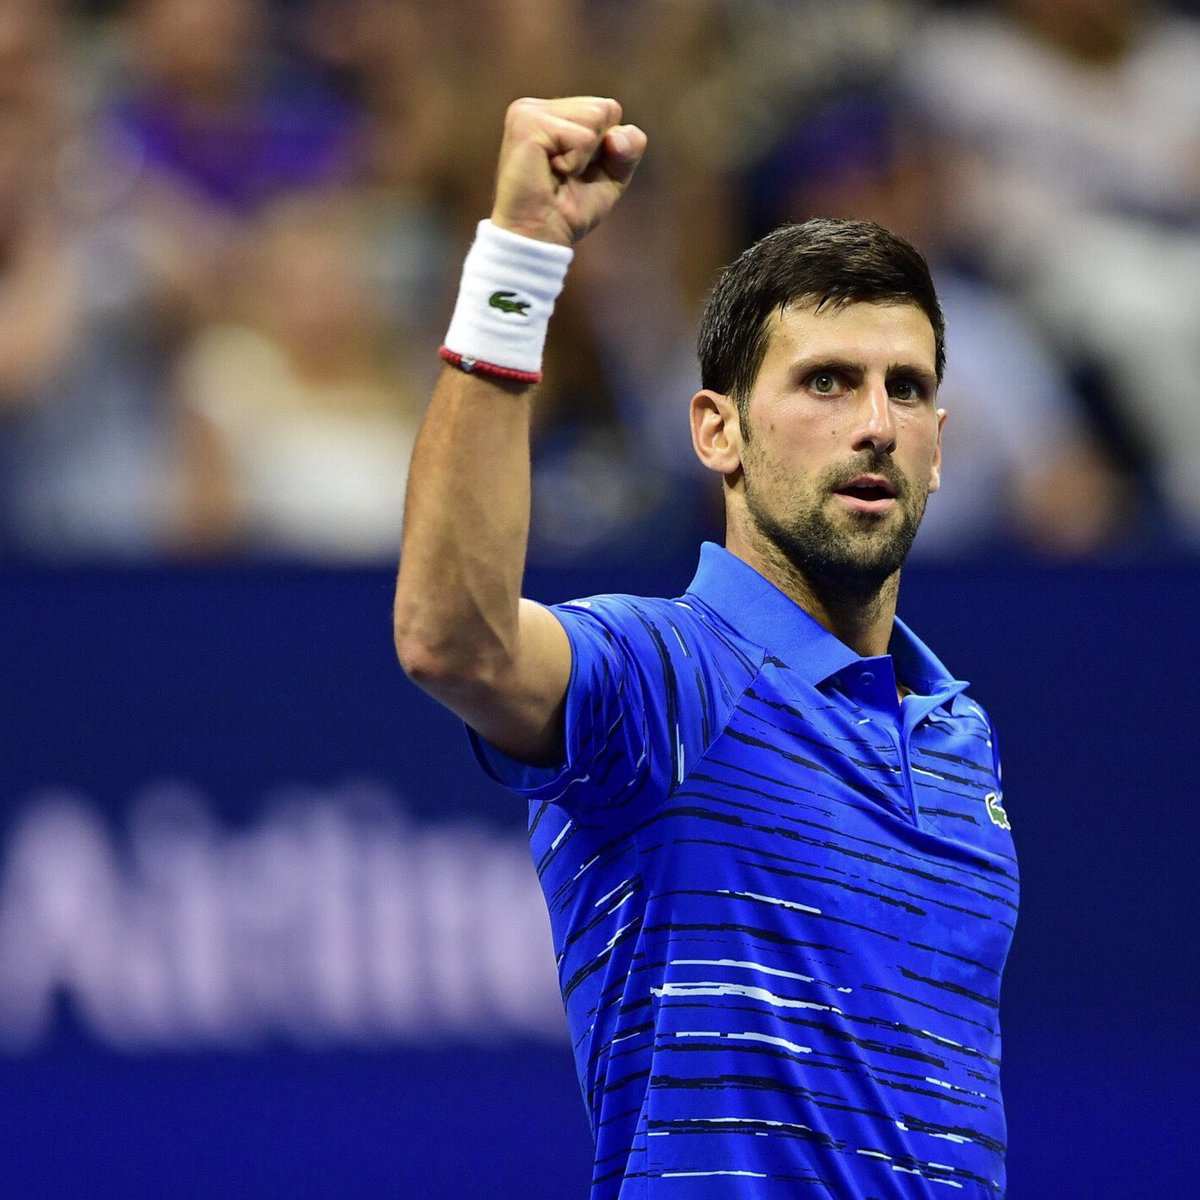 Novak Djokovic On Twitter I M Happy To Confirm That I Ll Participate At Cincytennis And Usopen This Year It Was Not An Easy Decision To Make With All The Obstacles And Challenges On